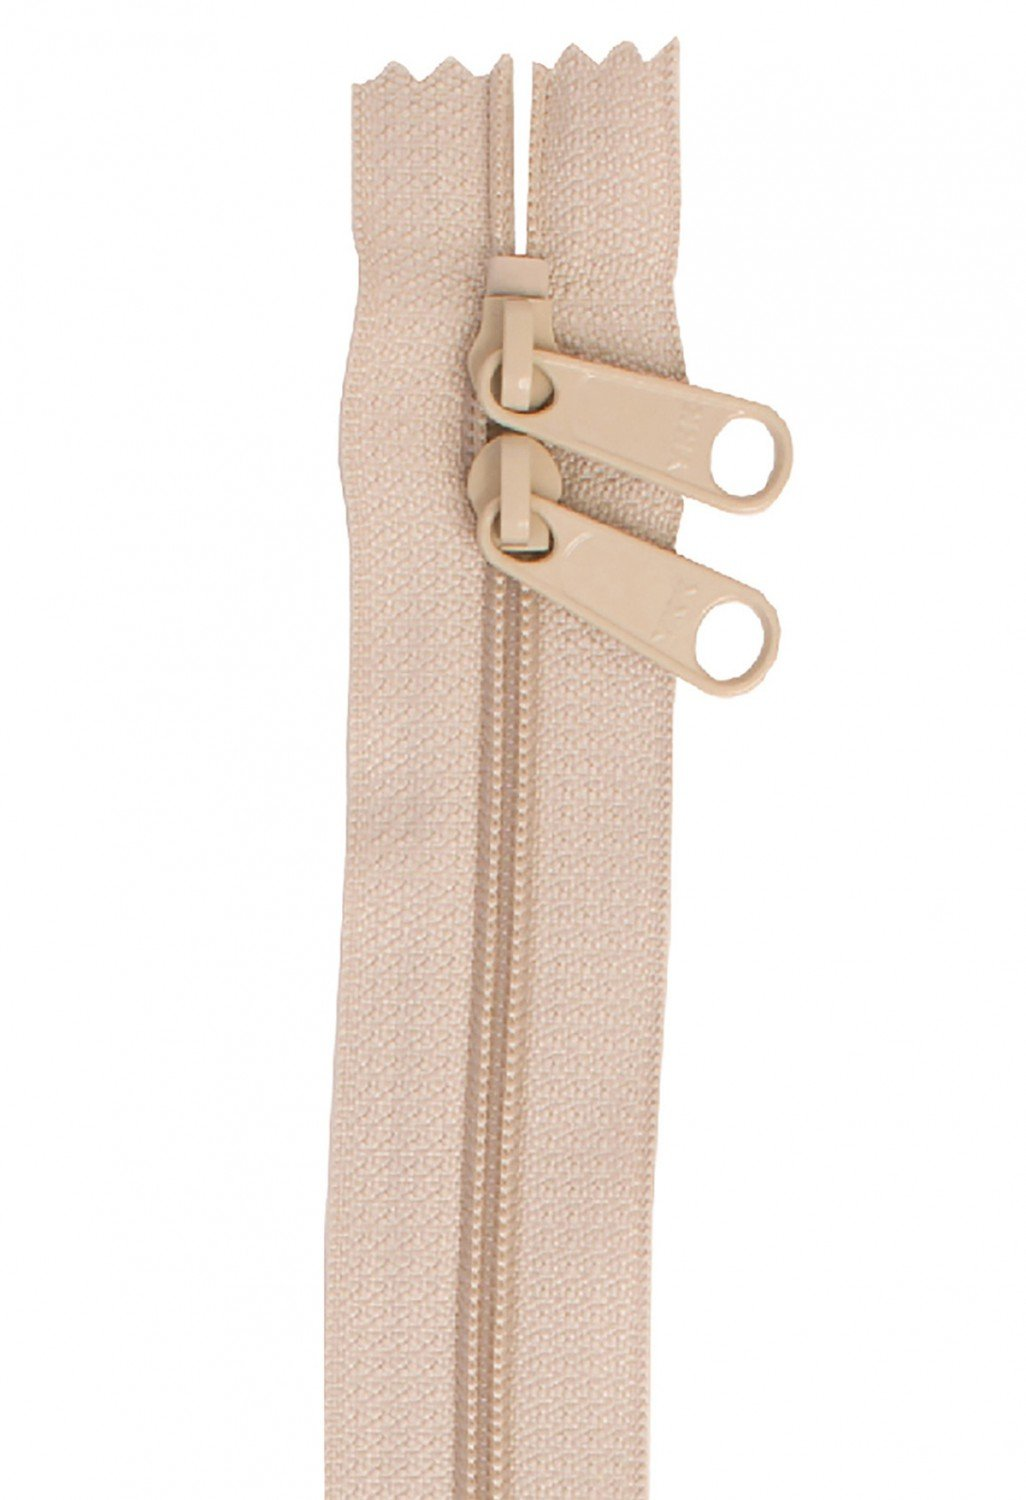 Handbag Zippers, 40 in Double Slide in Natural